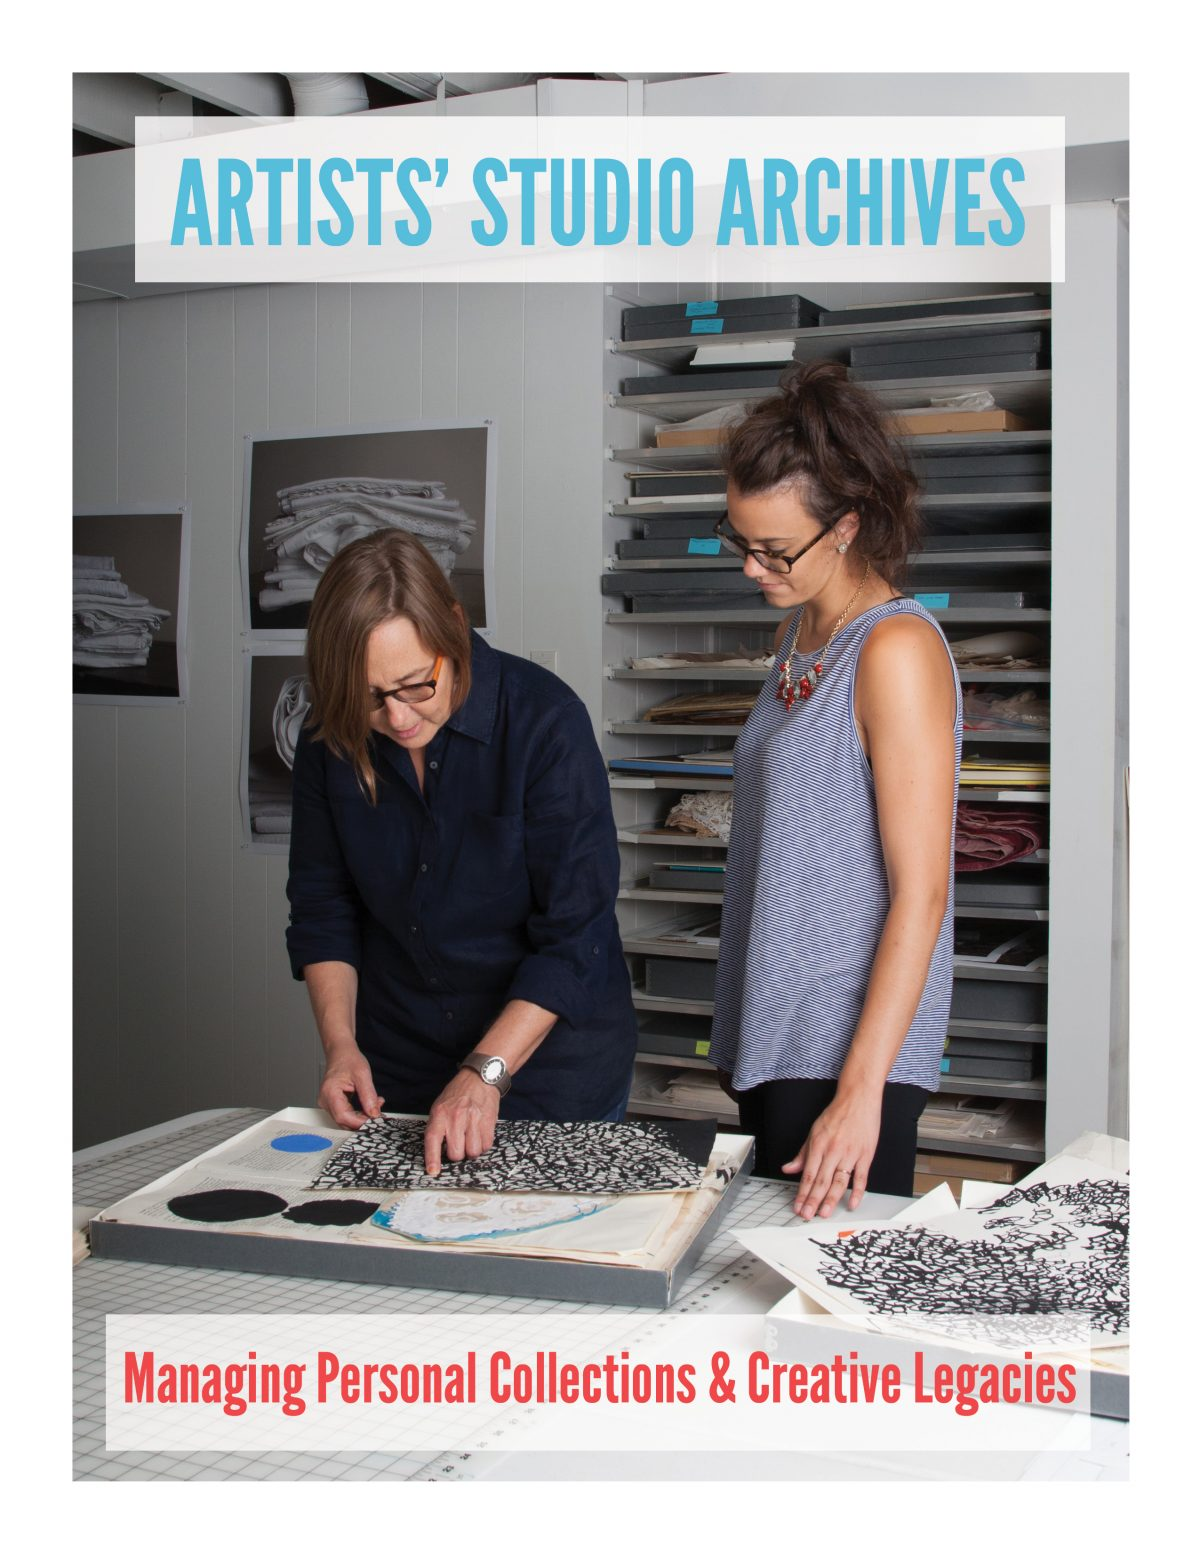 Artists' Studio Archives: Managing Personal Collections & Creative Legacies